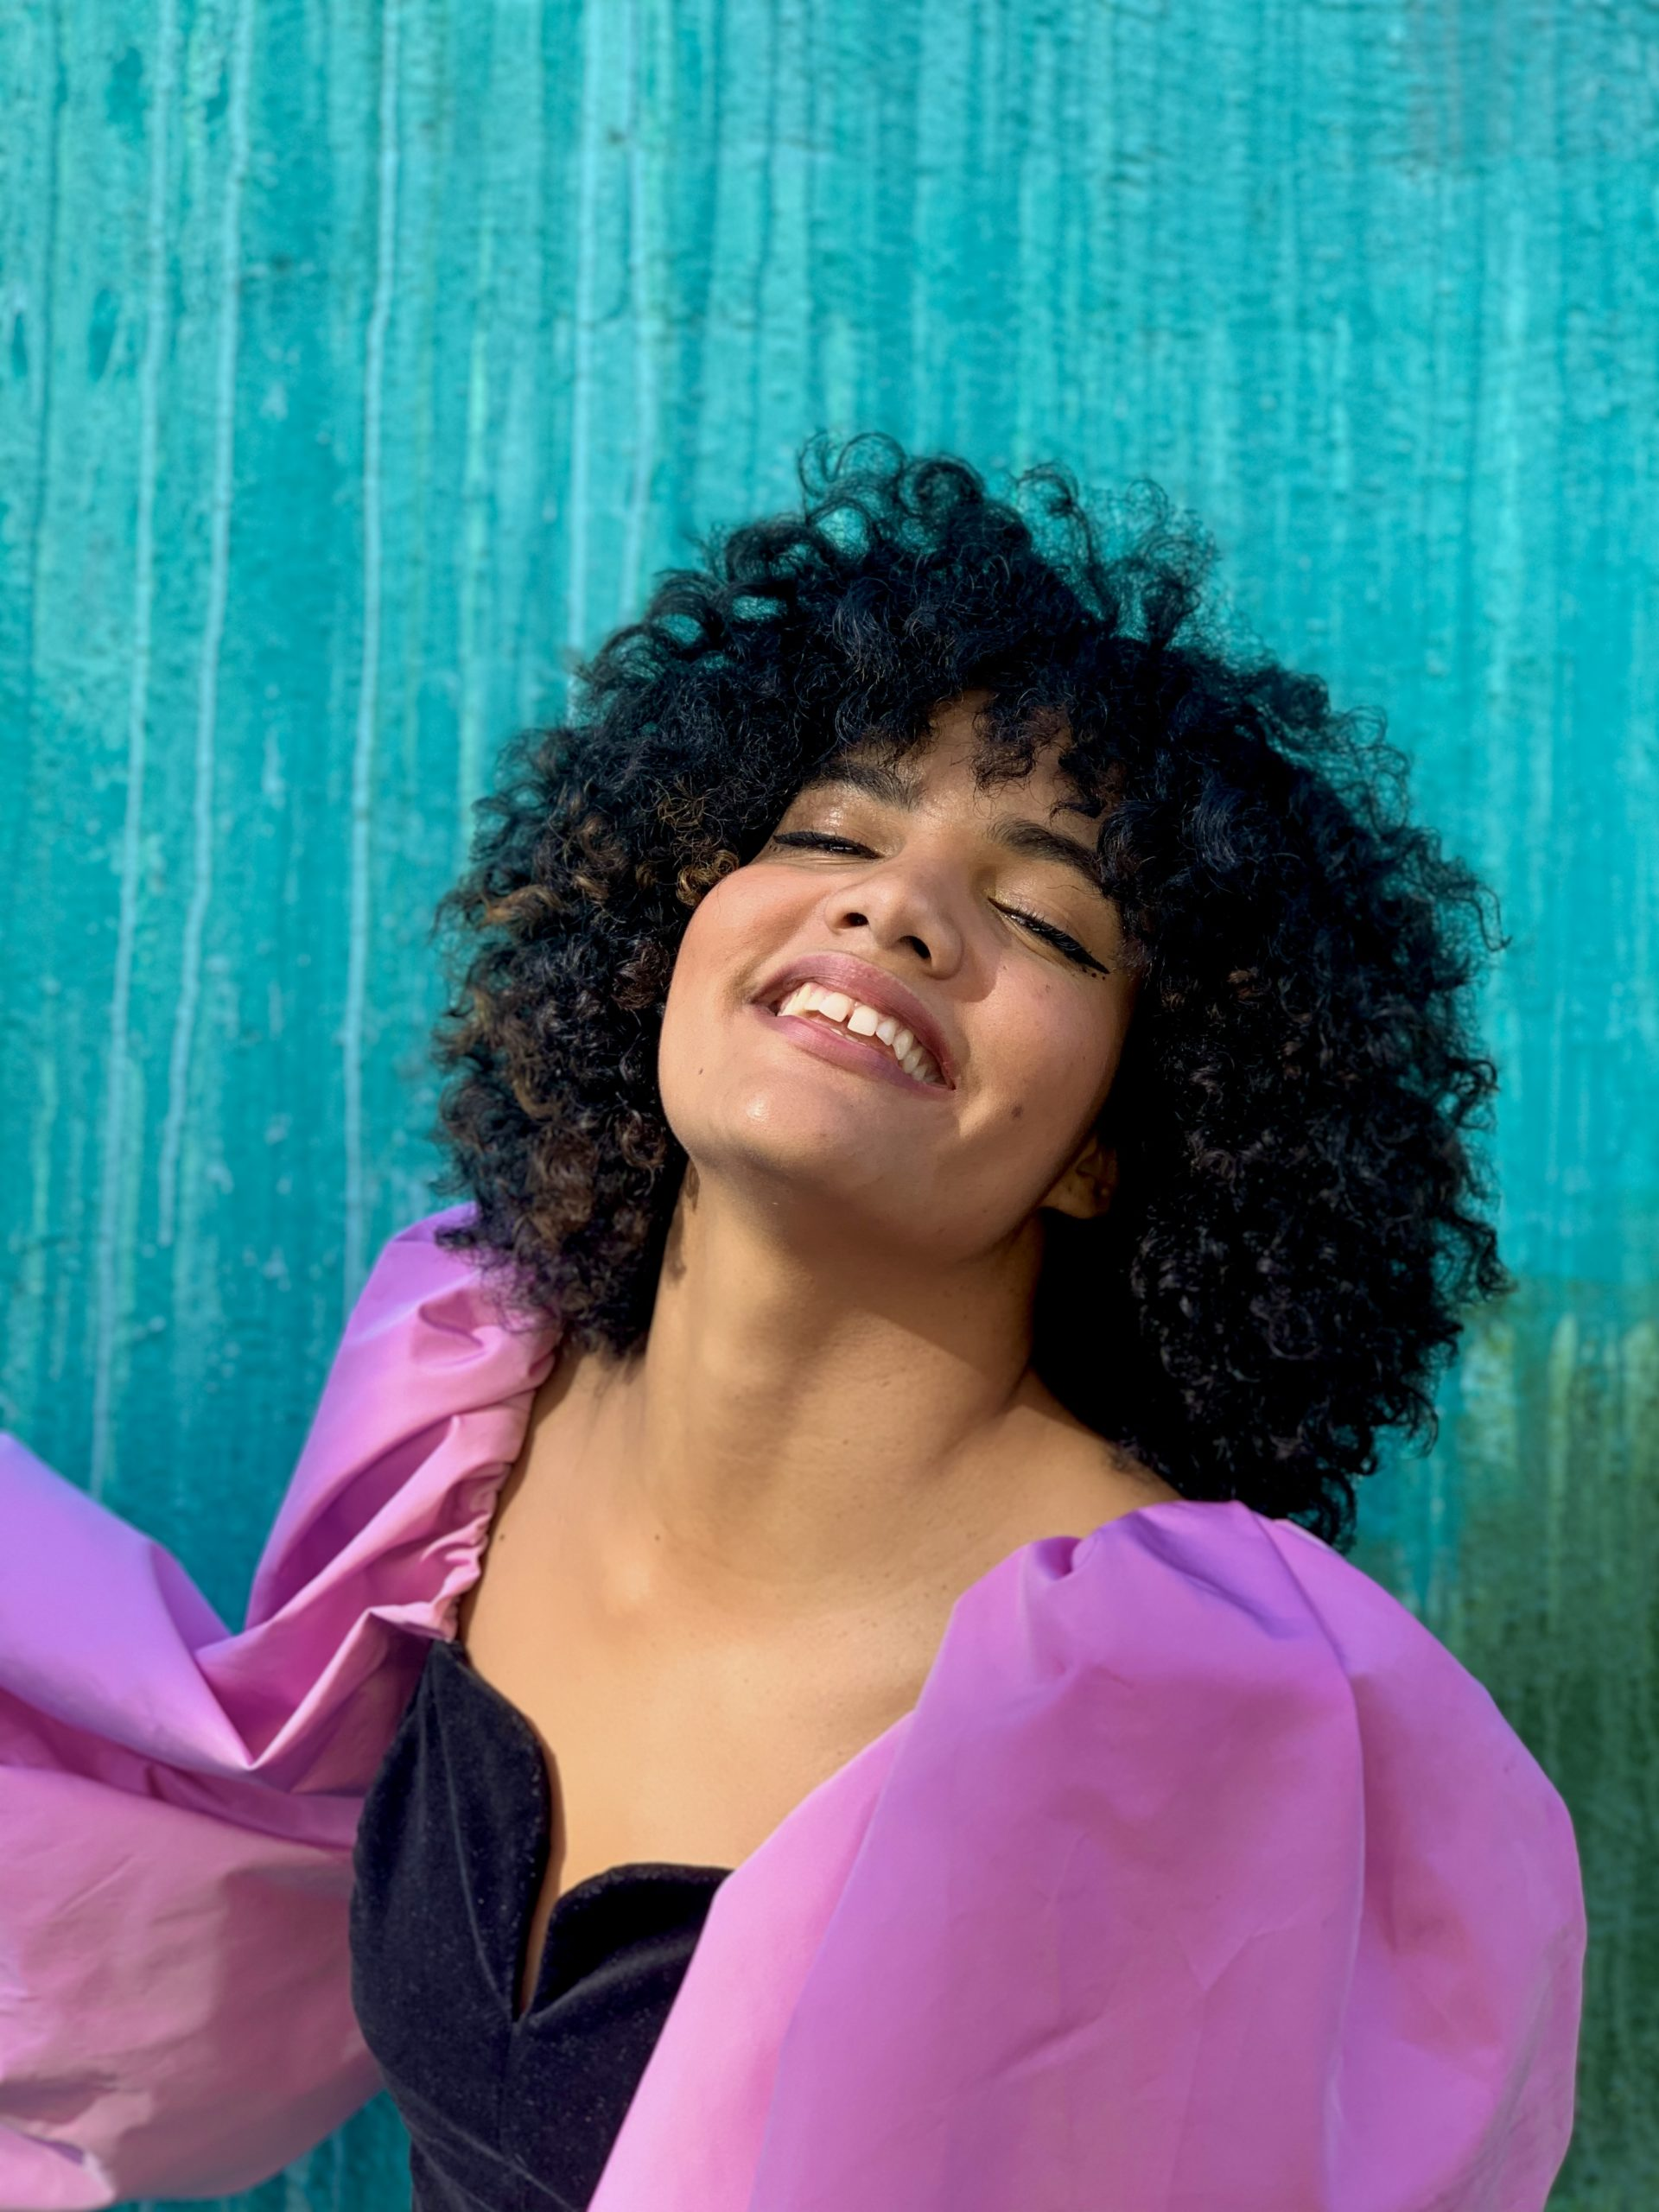 An Afro-Latina woman in a dark blue velvet top with voluminous fuschia sleeves throws her head back, smiling, in front of an aquamarine fabric backdrop. She has natural hair in a cloud around her head.